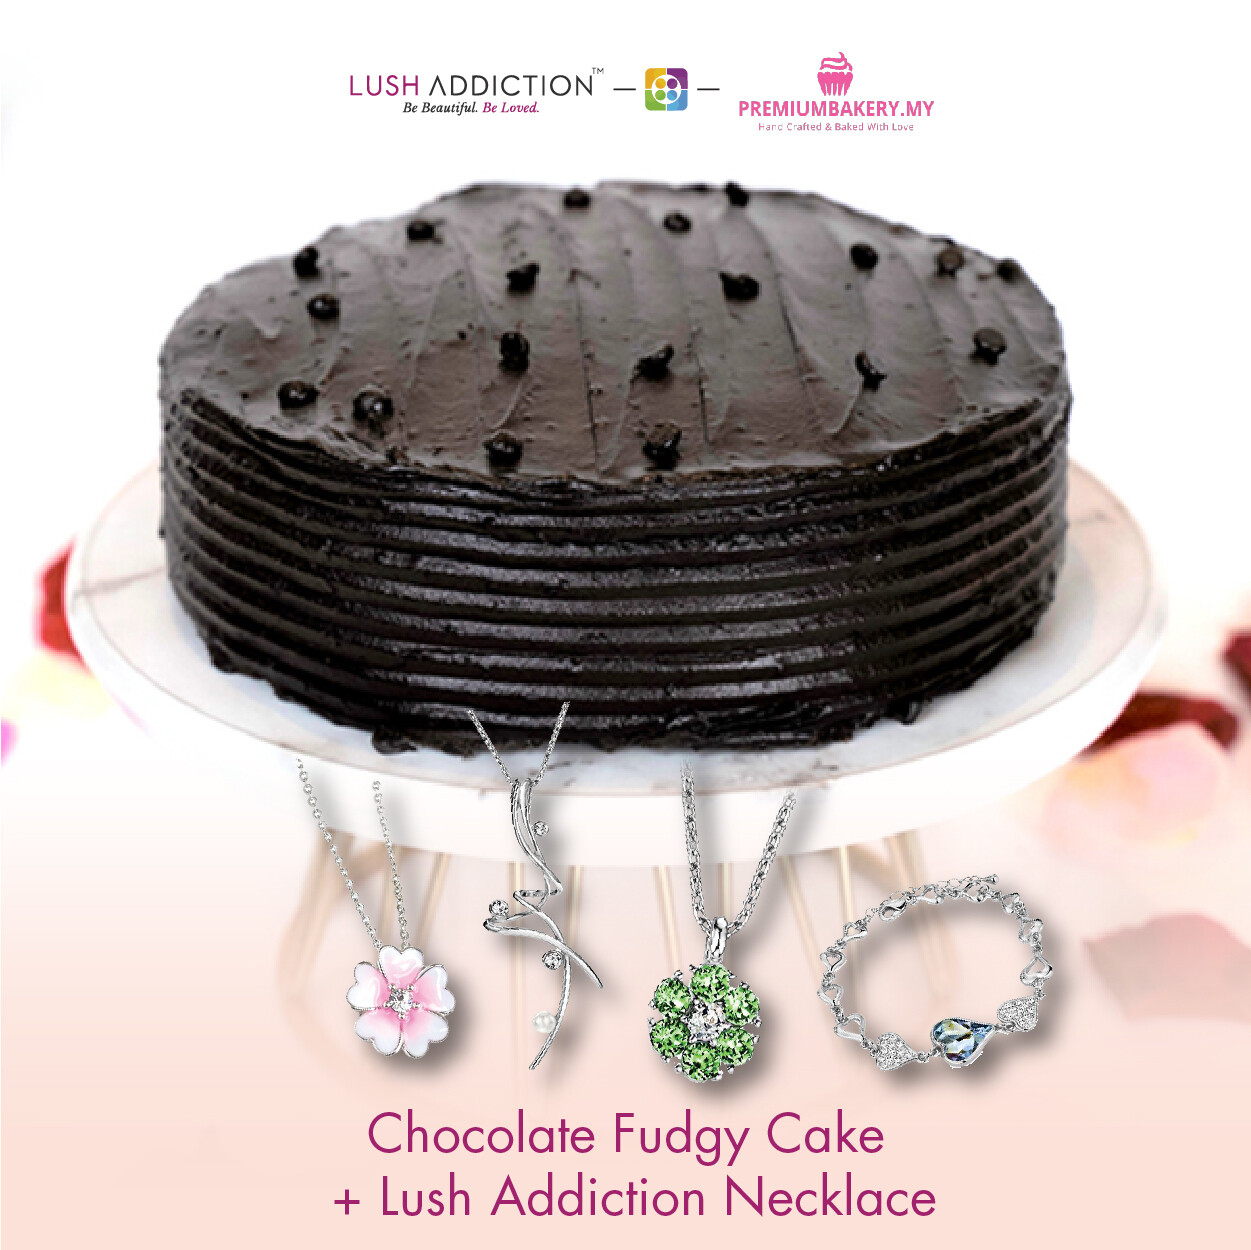 Chocolate Fudgy Cake + Lush Addiction Necklace (By: Premium Bakery  from KL)